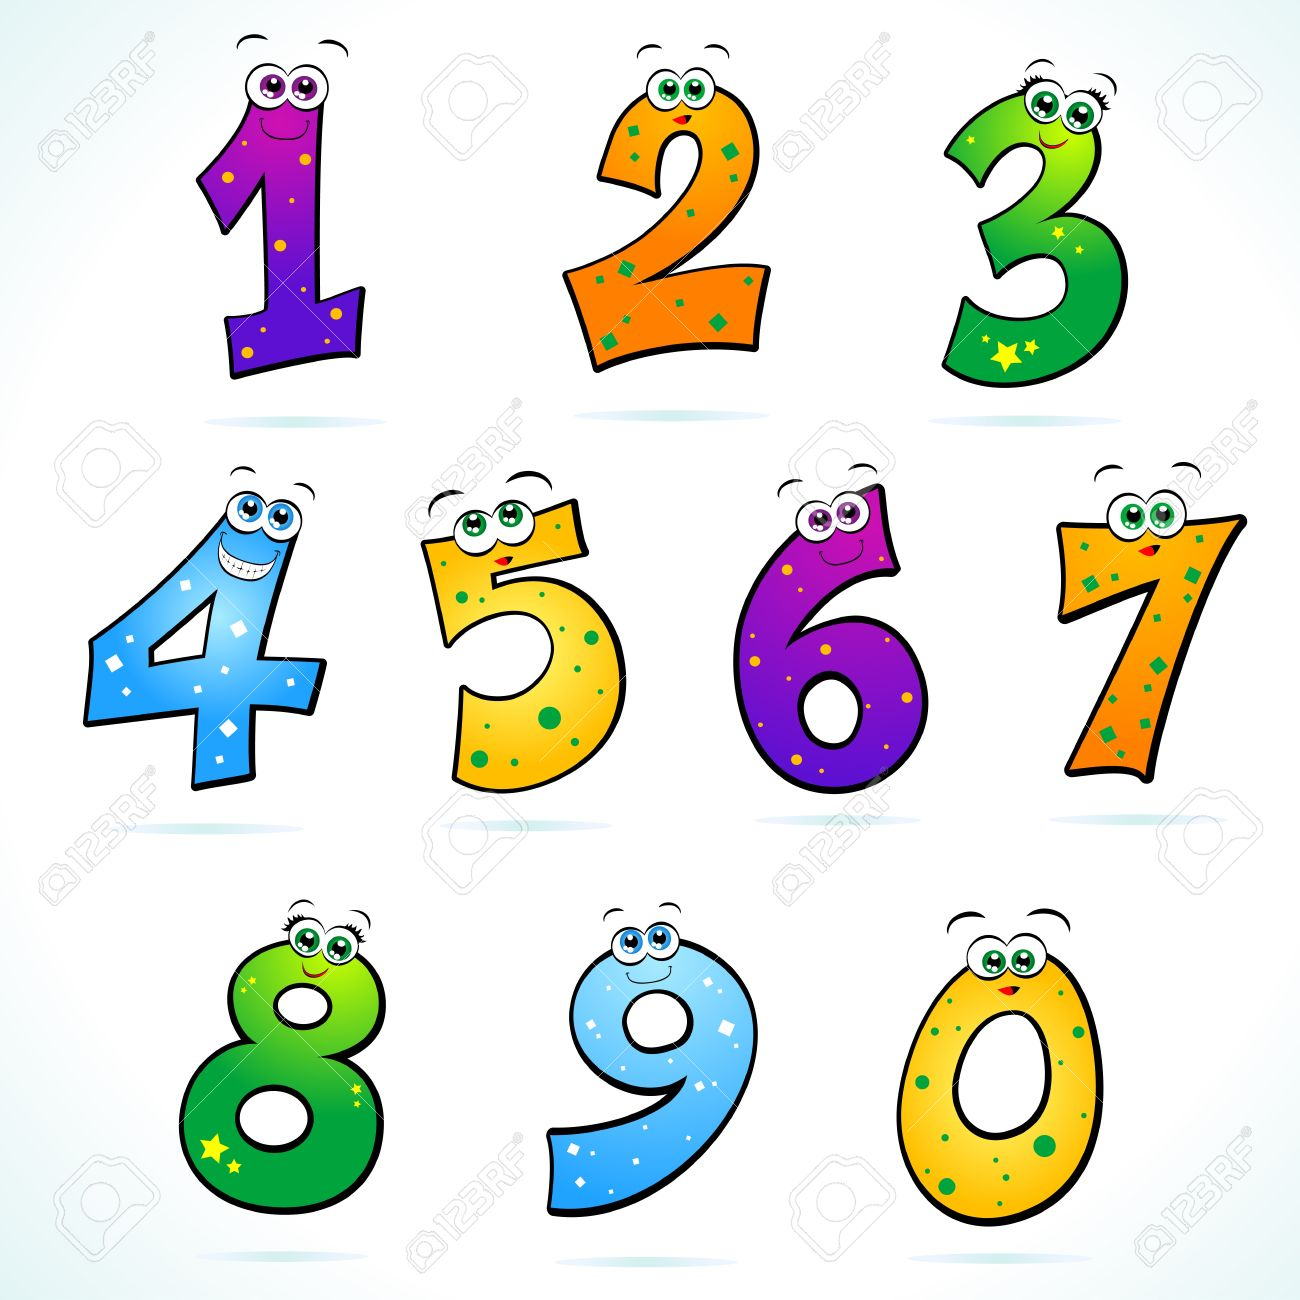 Funny Number Clipart | Free download on ClipArtMag